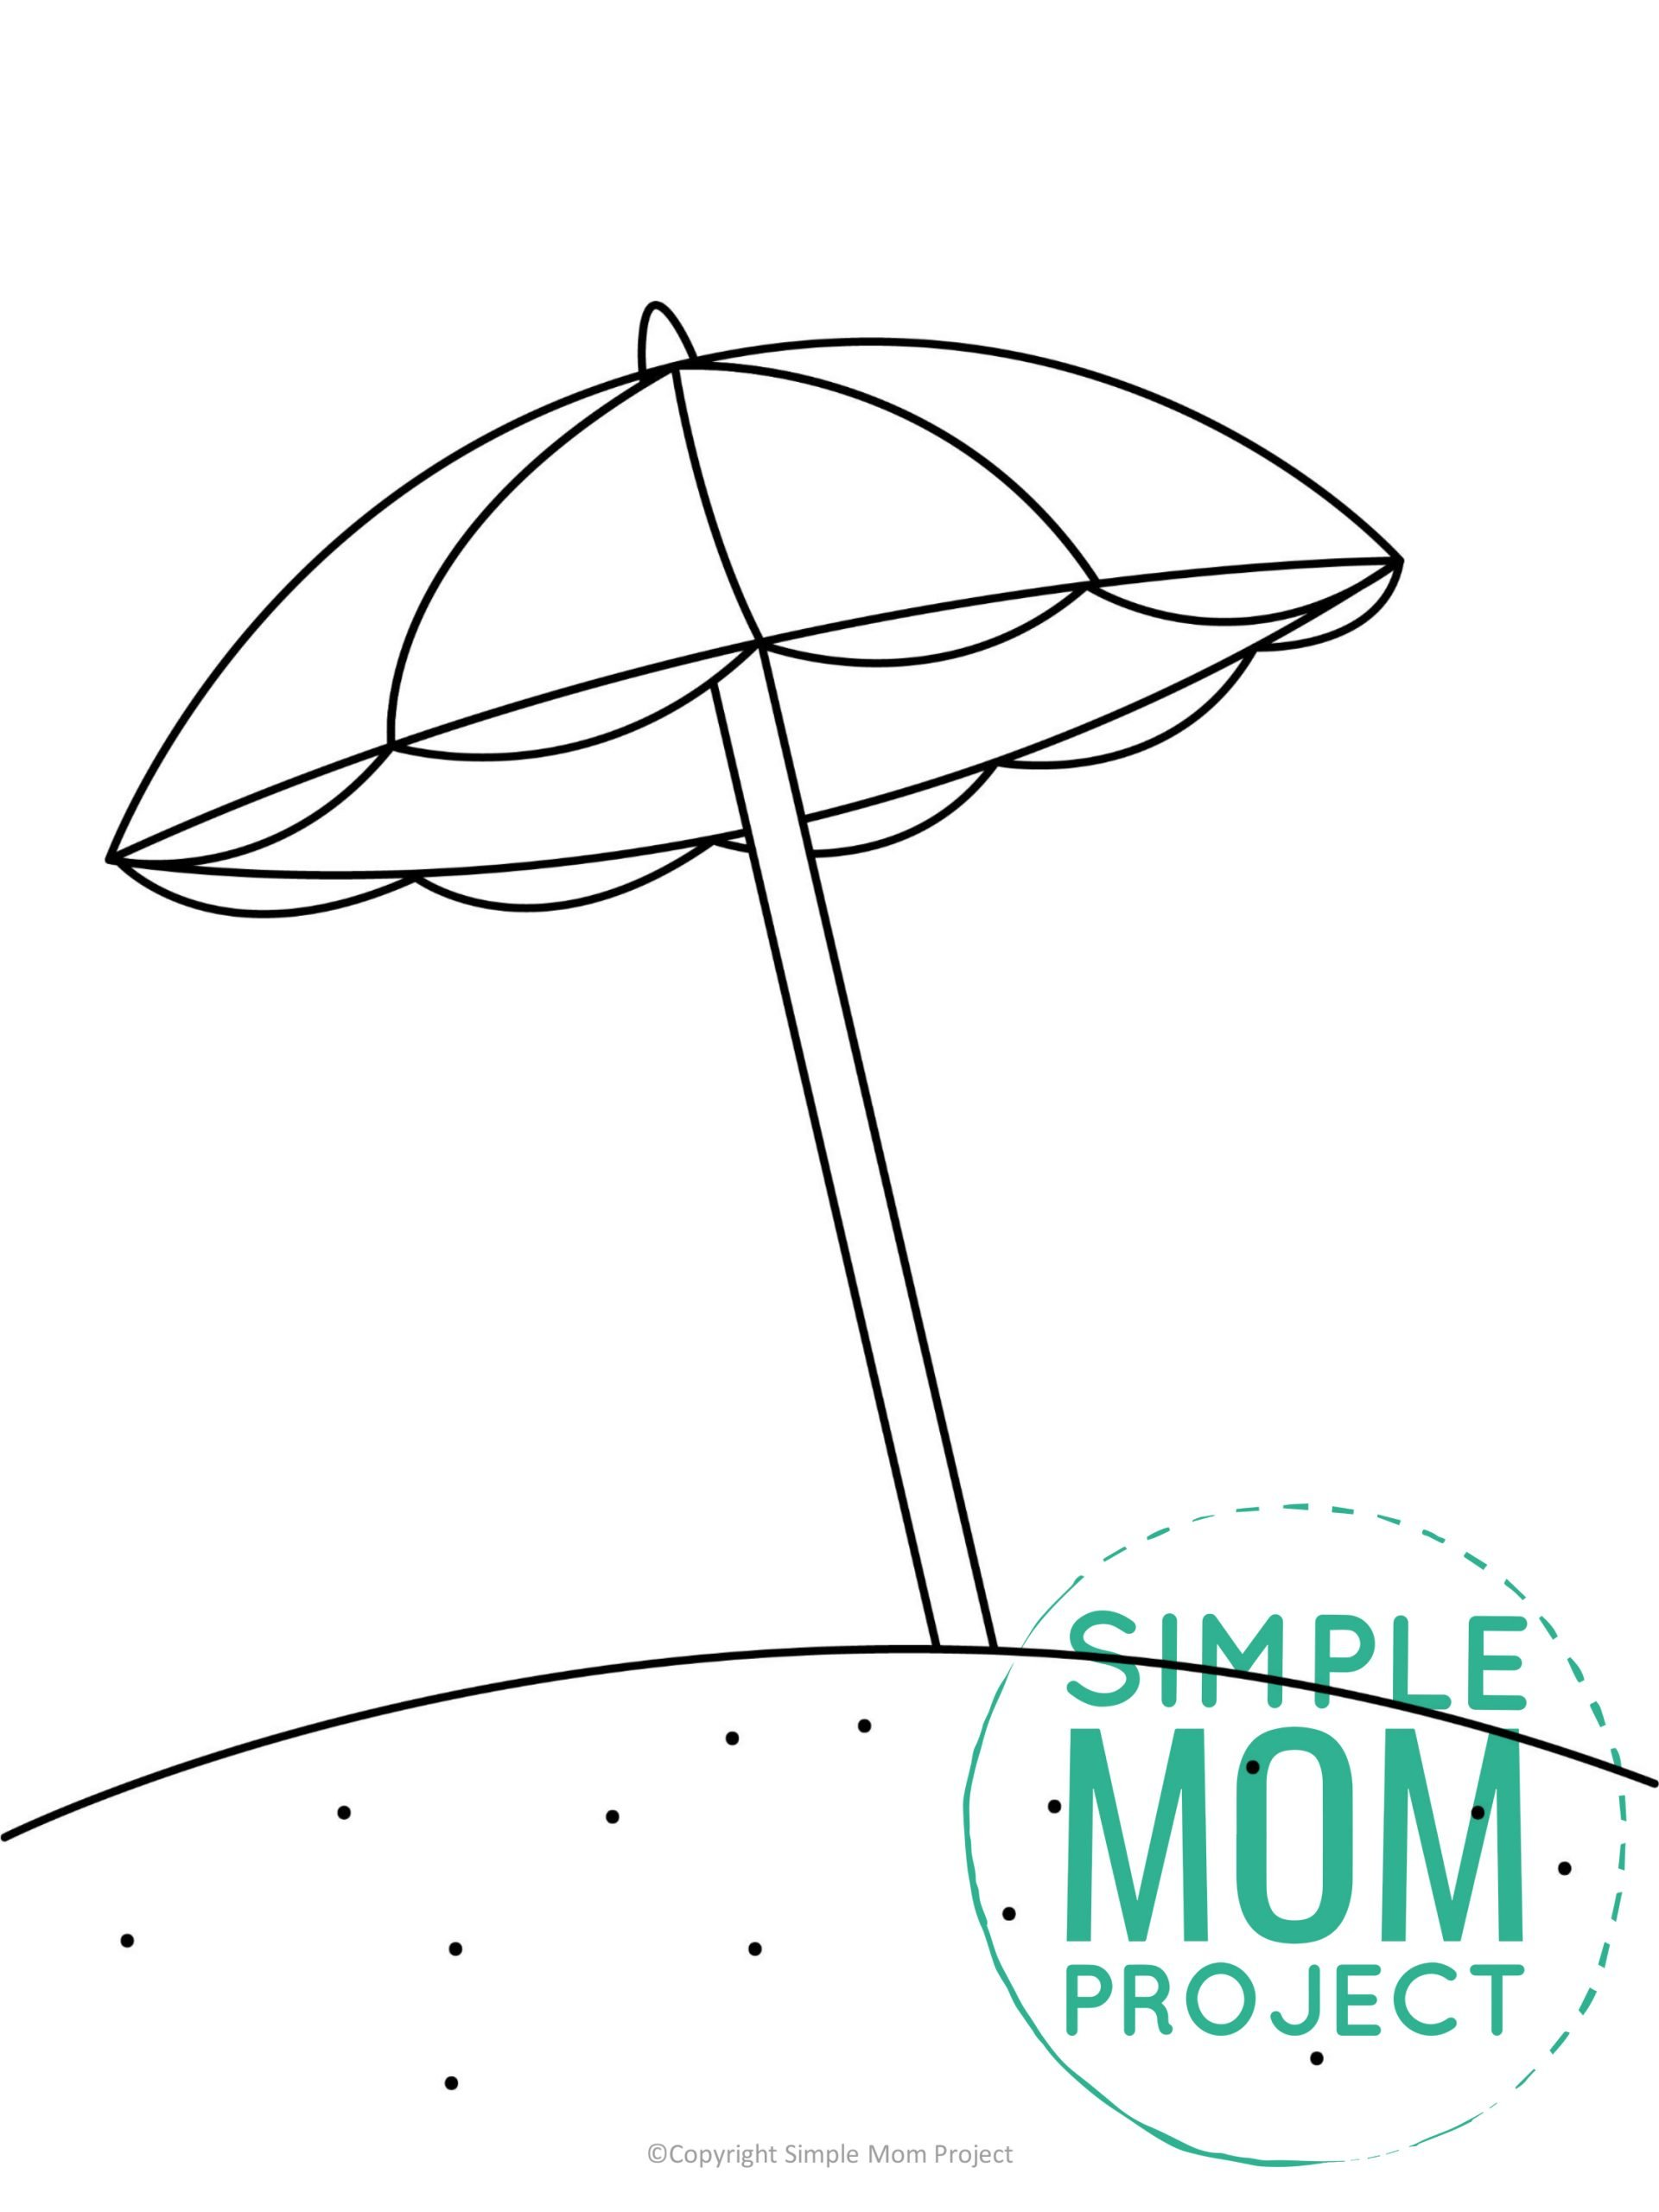 Free printable beach umbrella template for kids, preschoolers, and toddlers